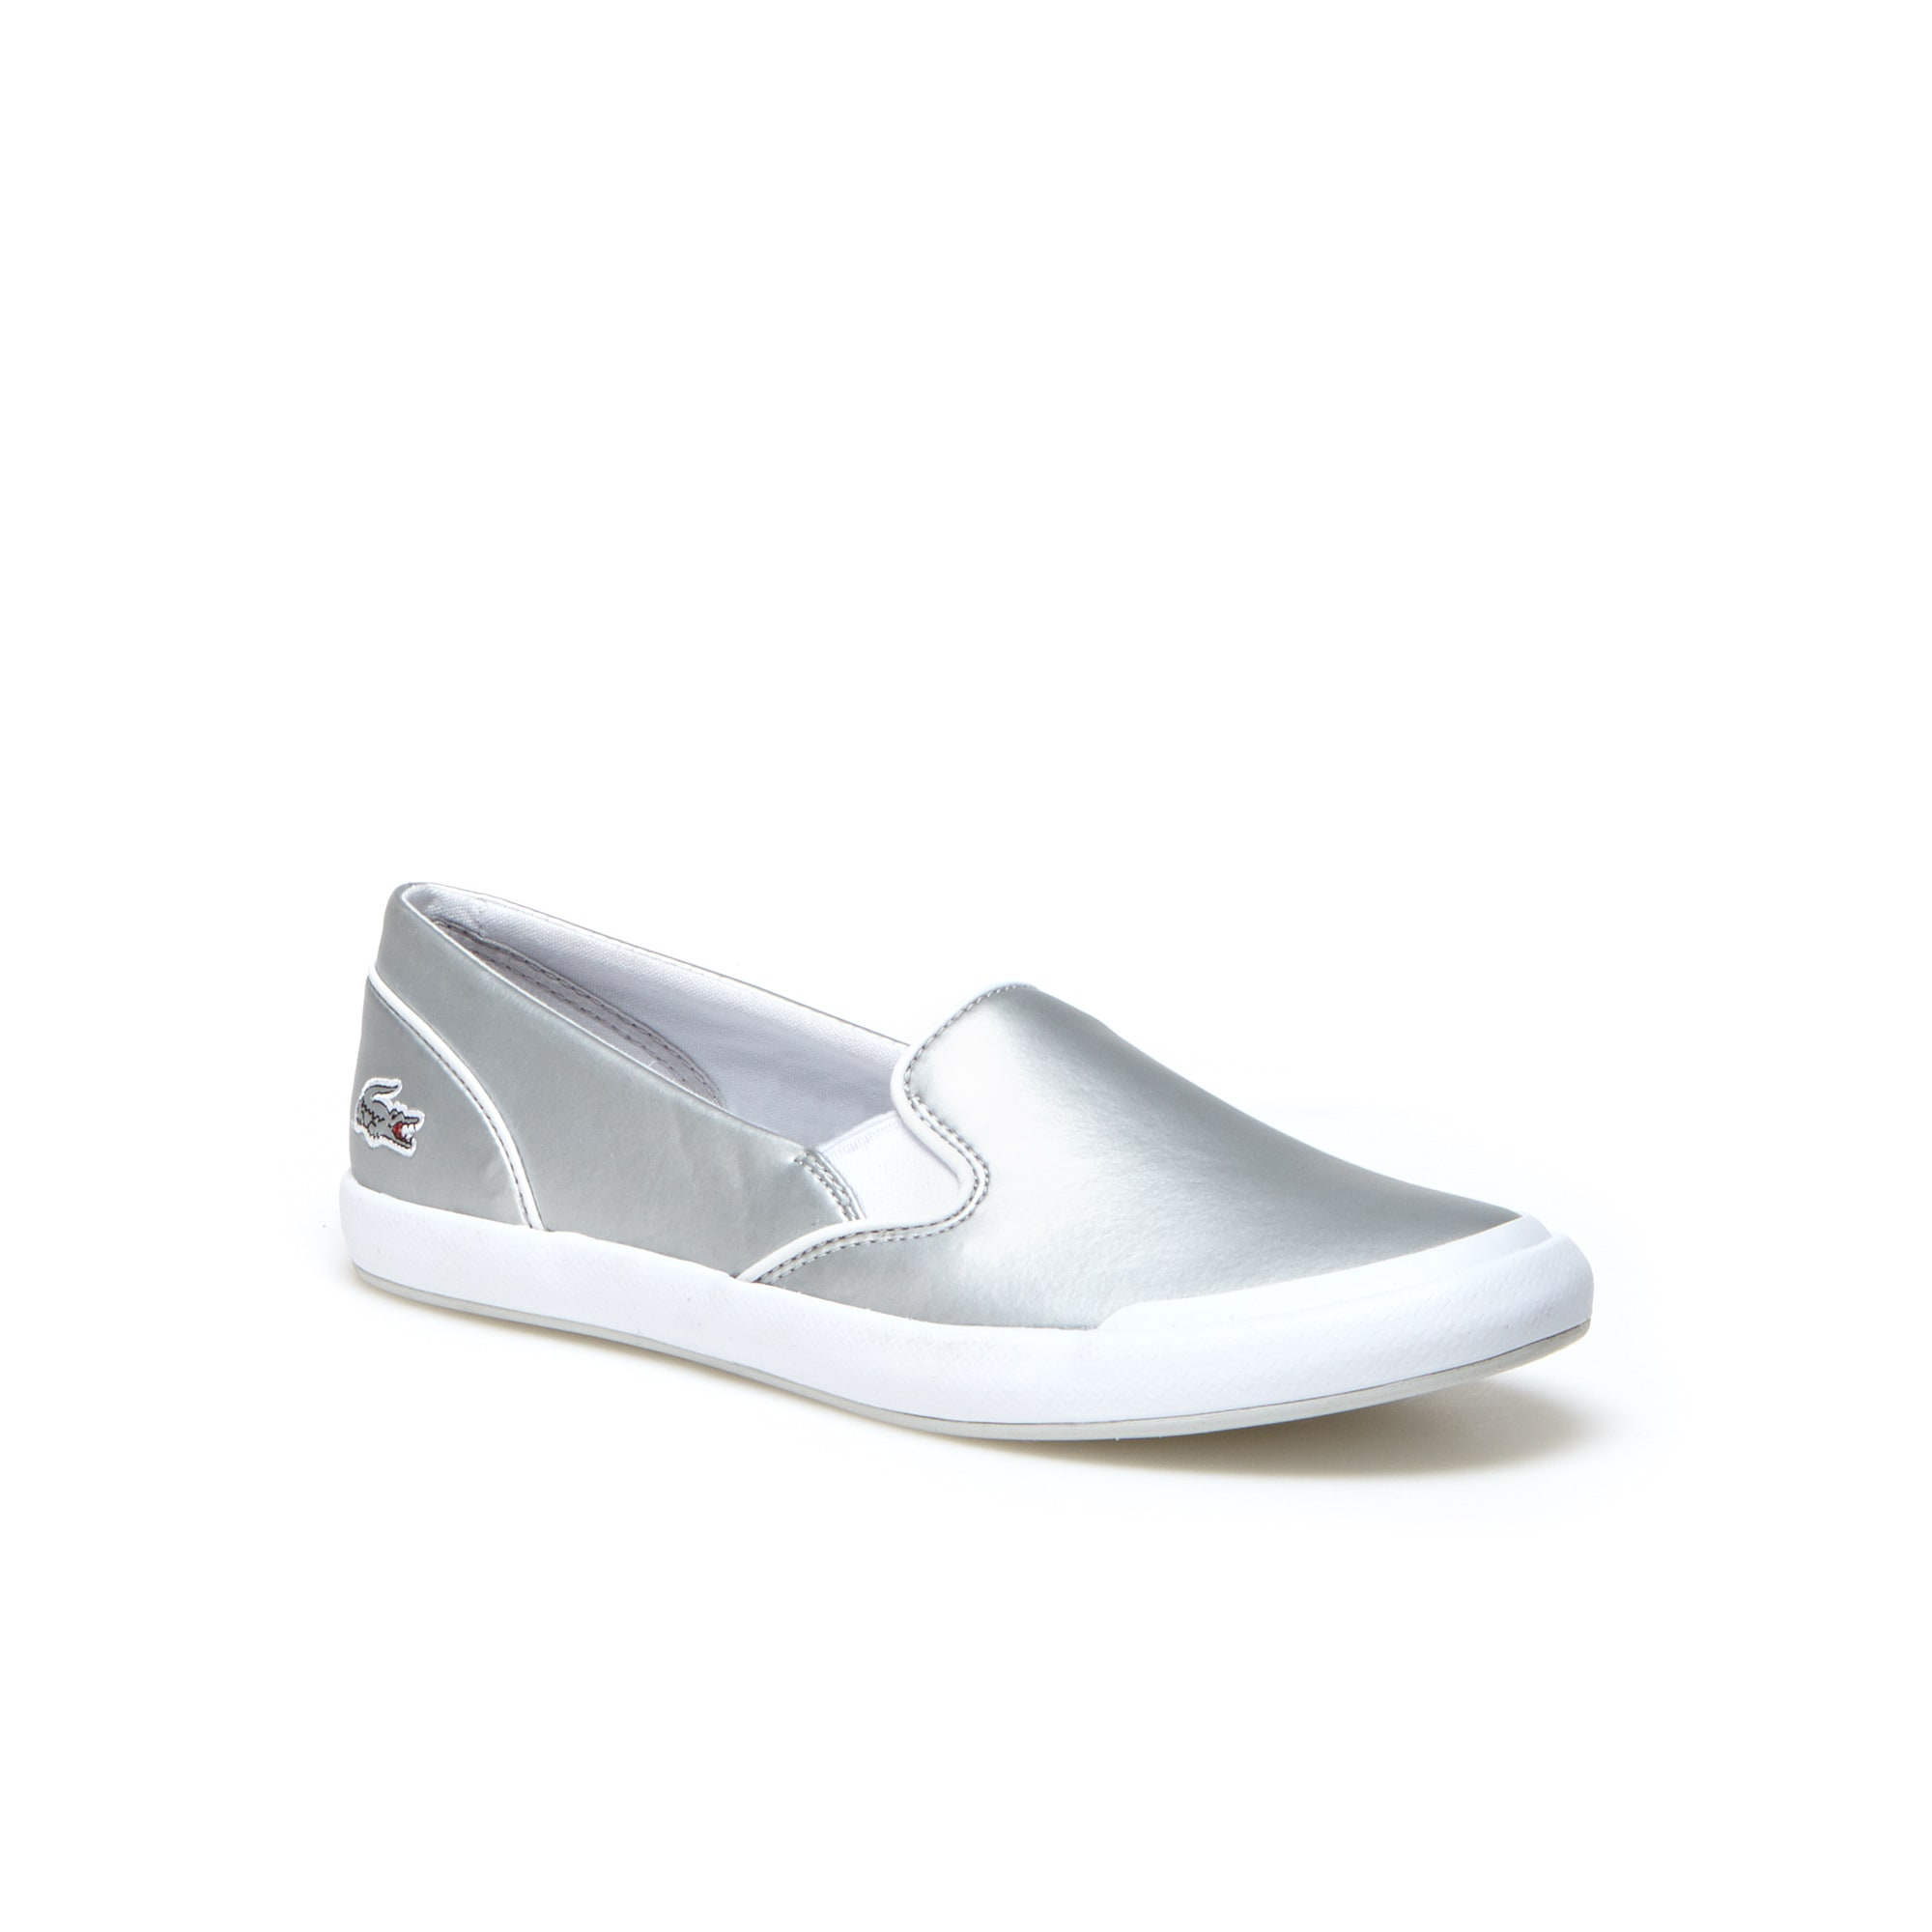 Sneakers senza stringhe Lancelle in pelle